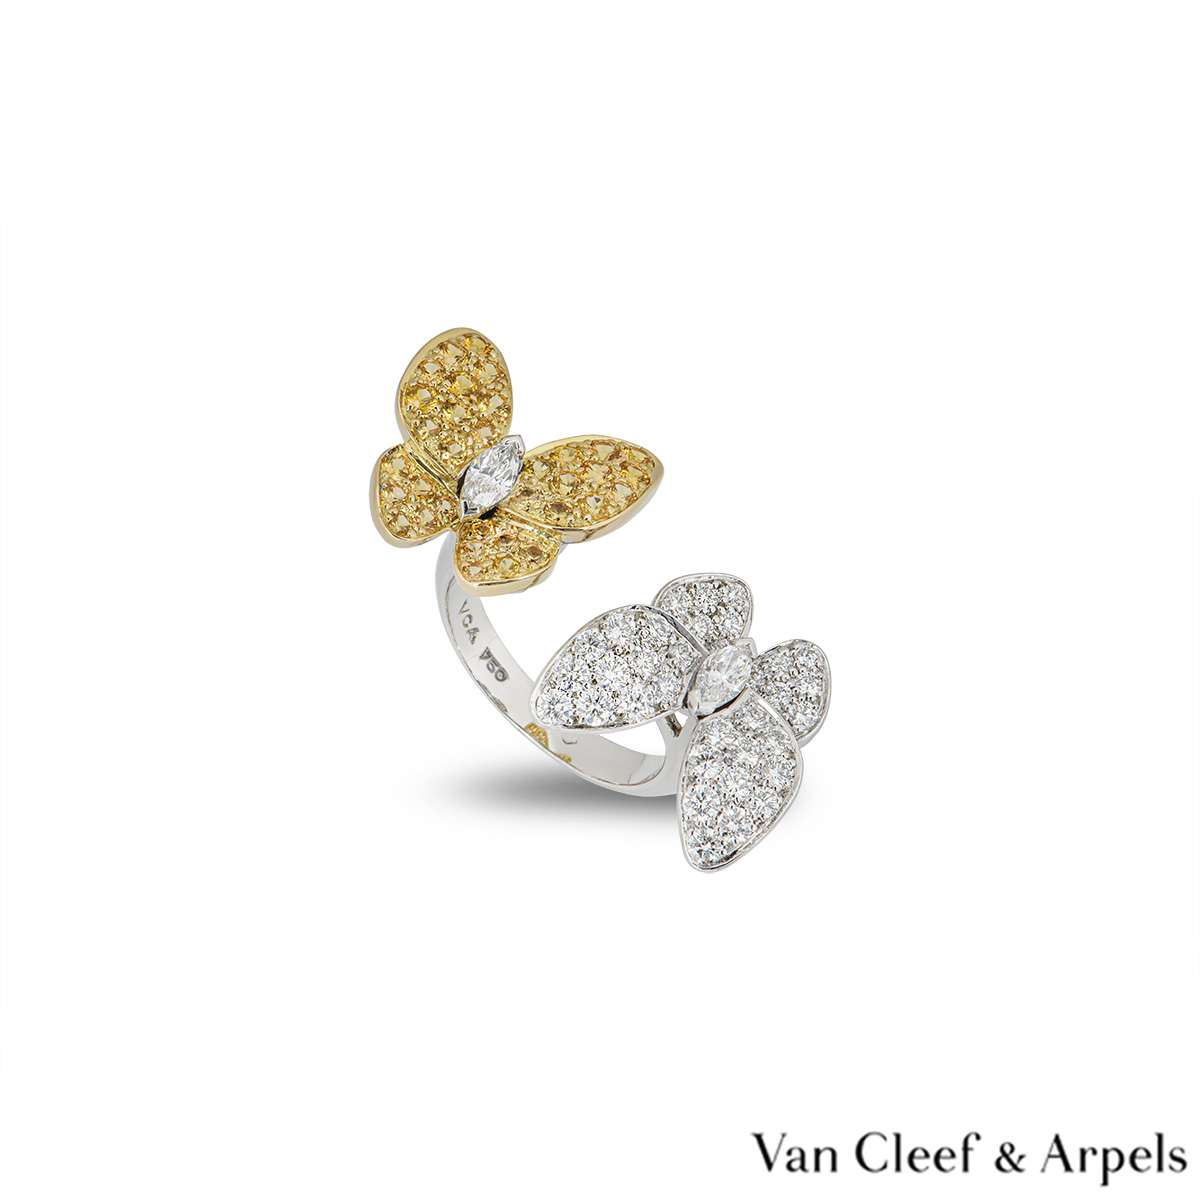 Van Cleef & Arpels Two Butterfly Between the Finger Ring VCARA13600